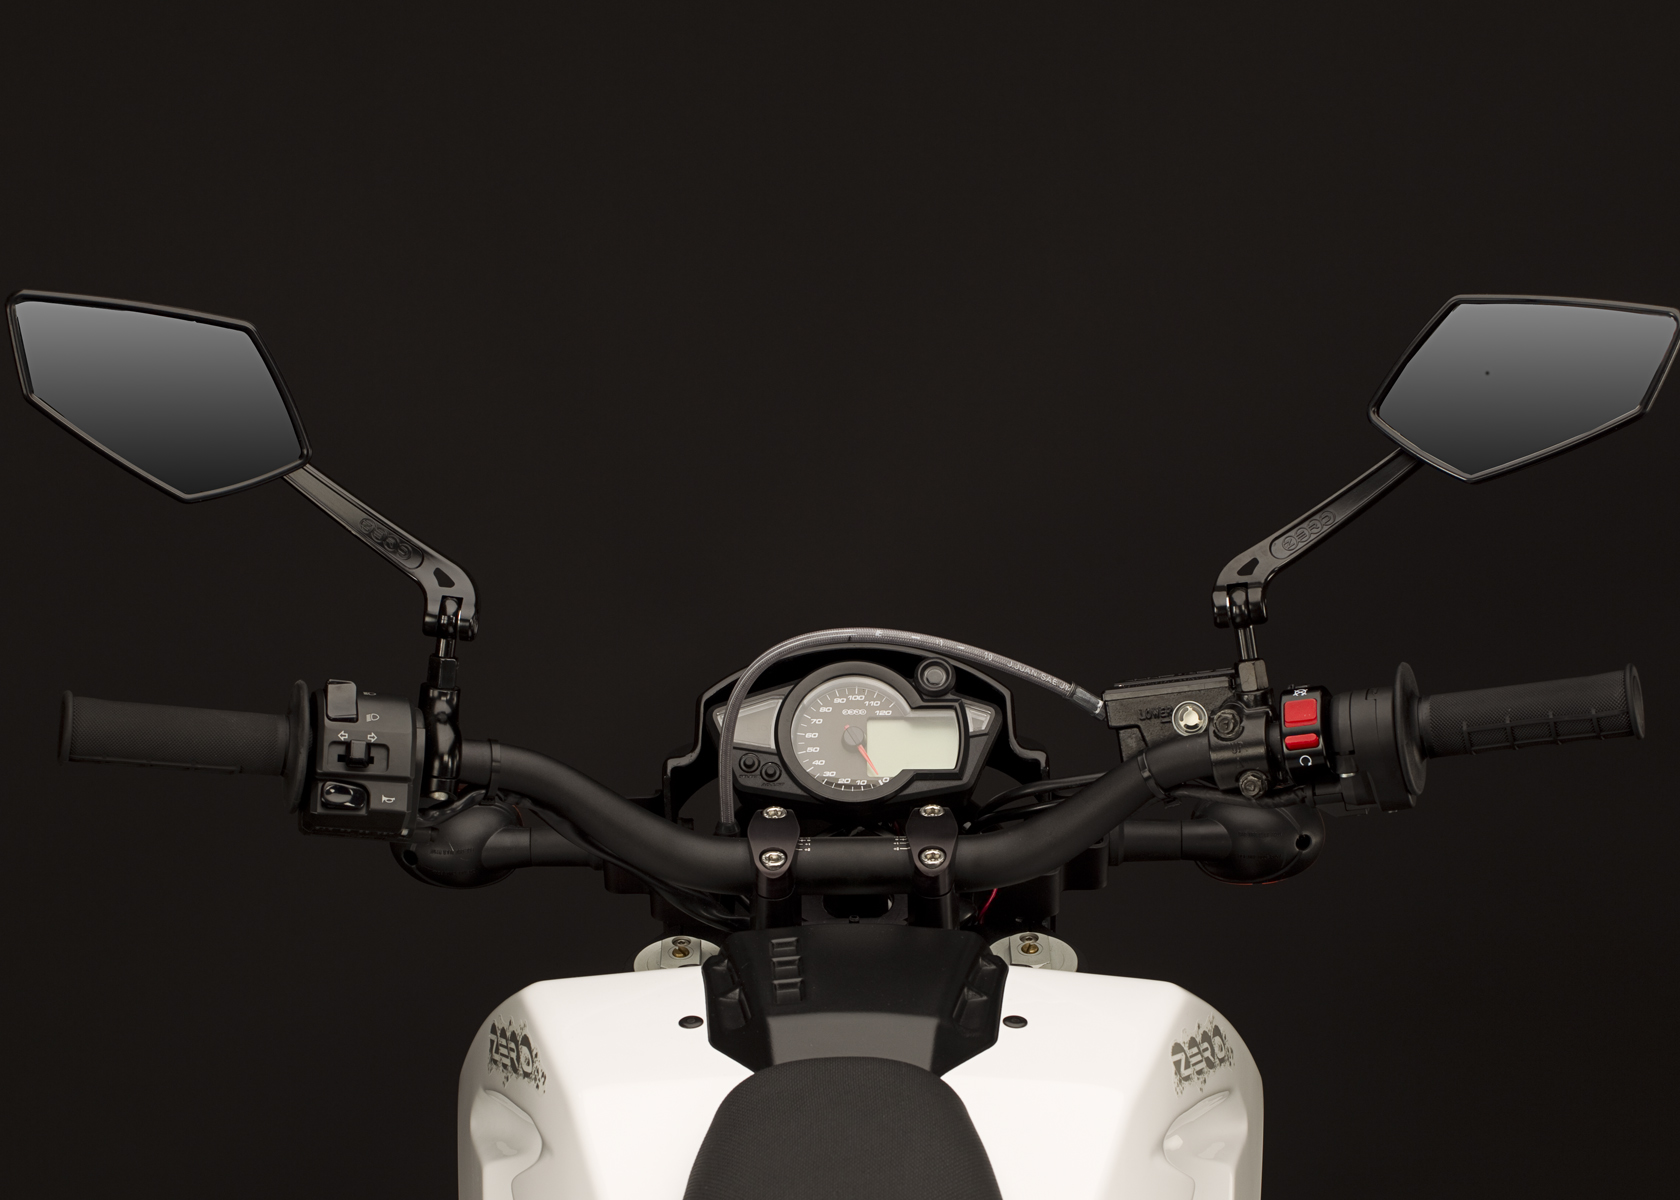 2011 Zero DS Electric Motorcycle: Mirrors and Controls